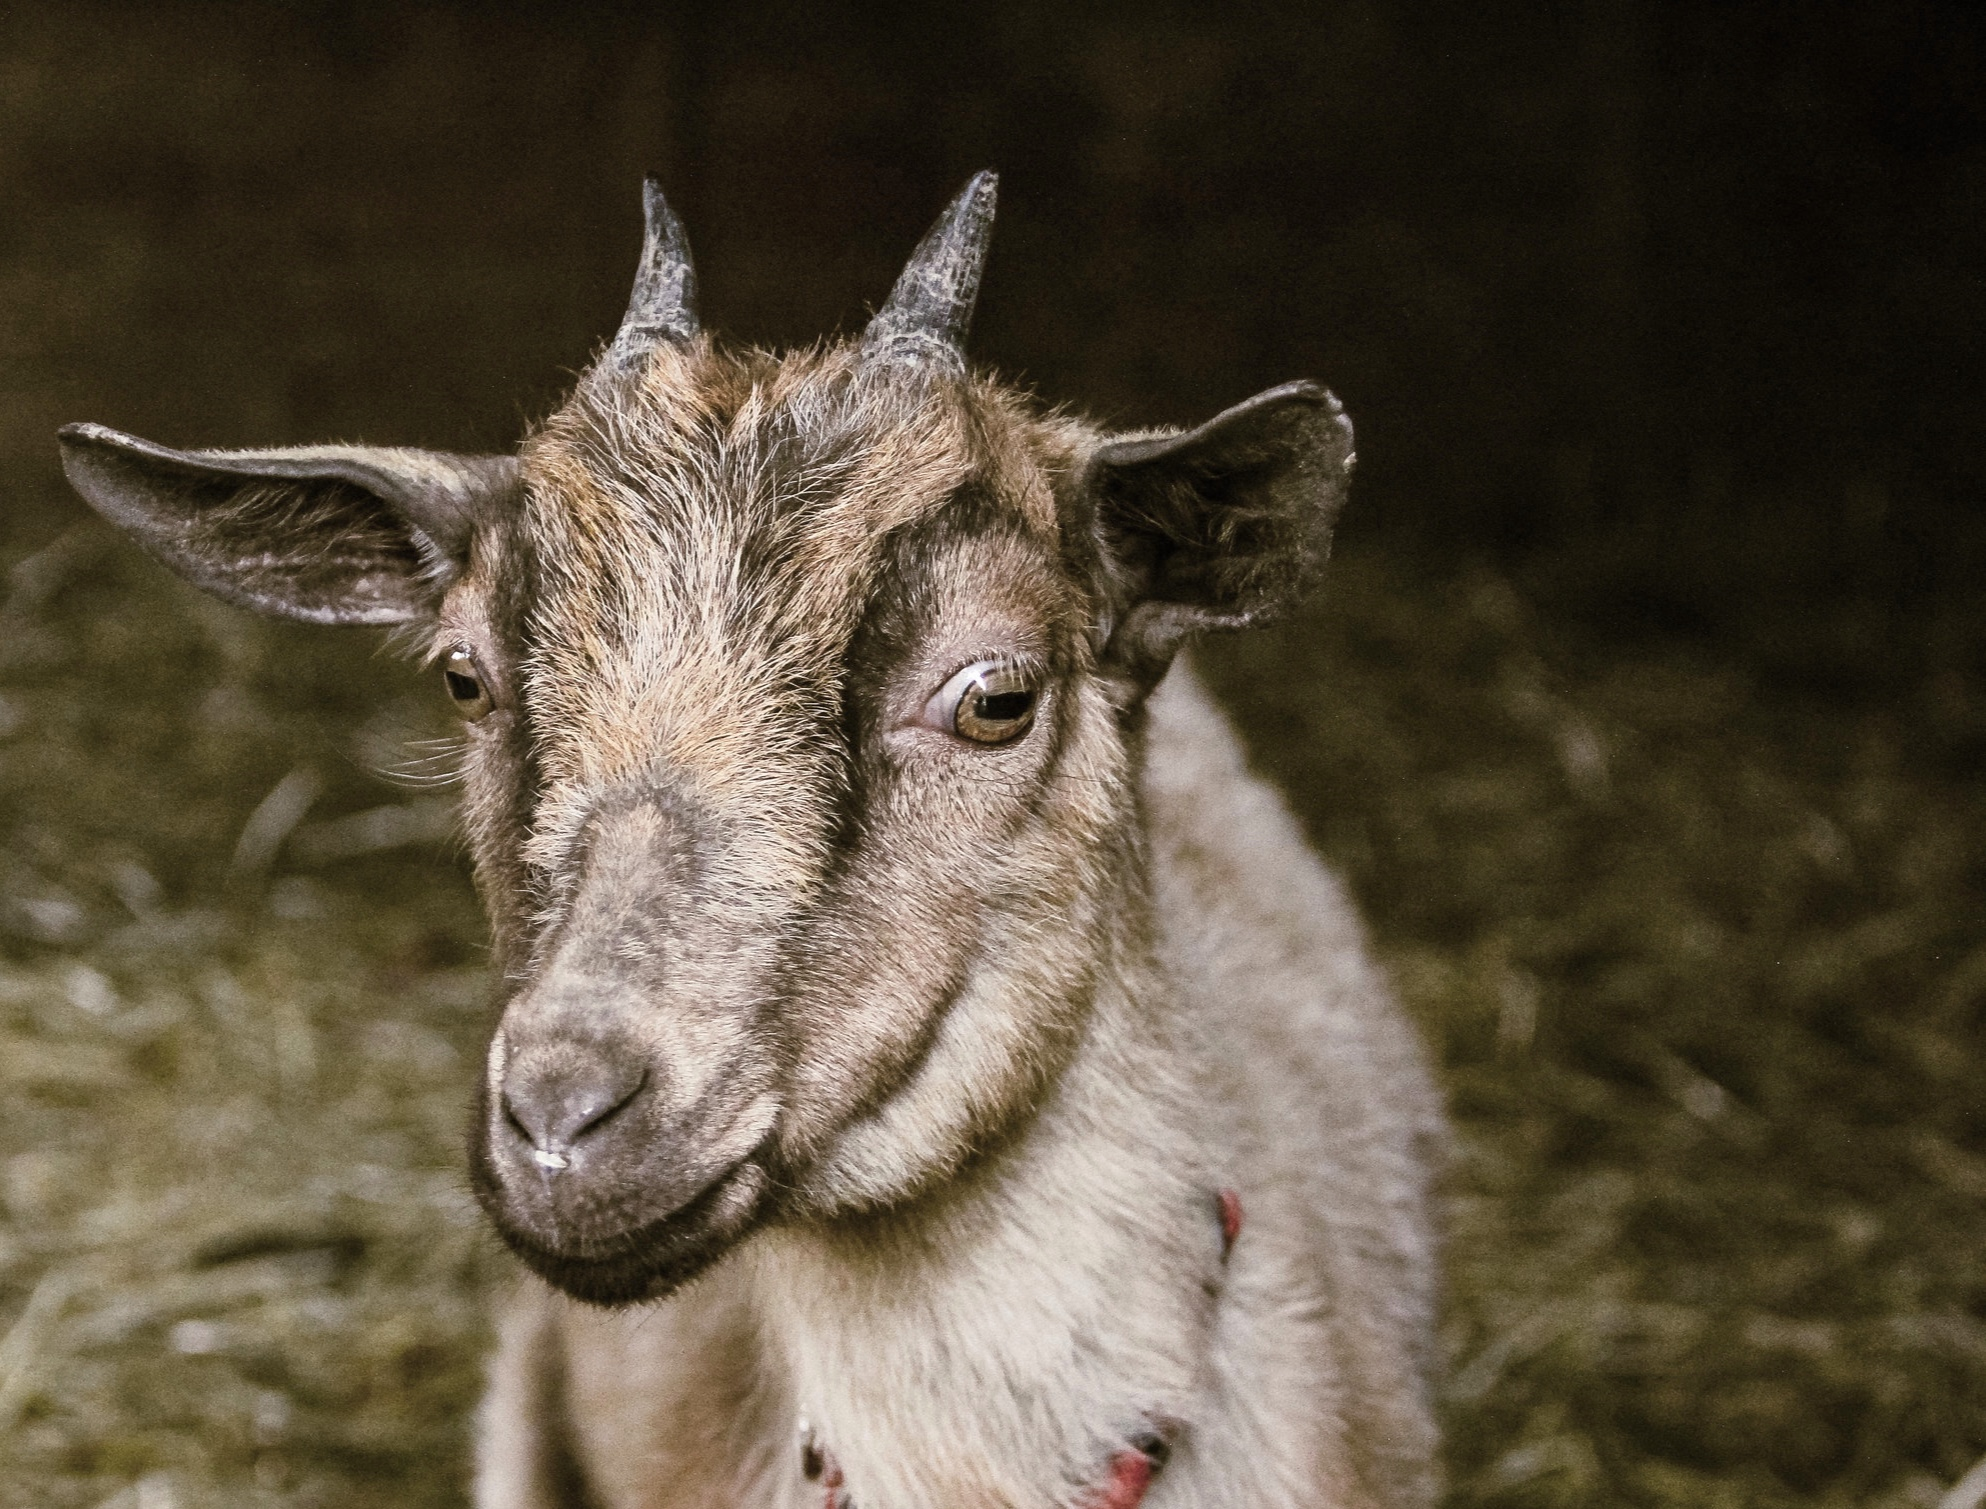 Lucy, one of our goats